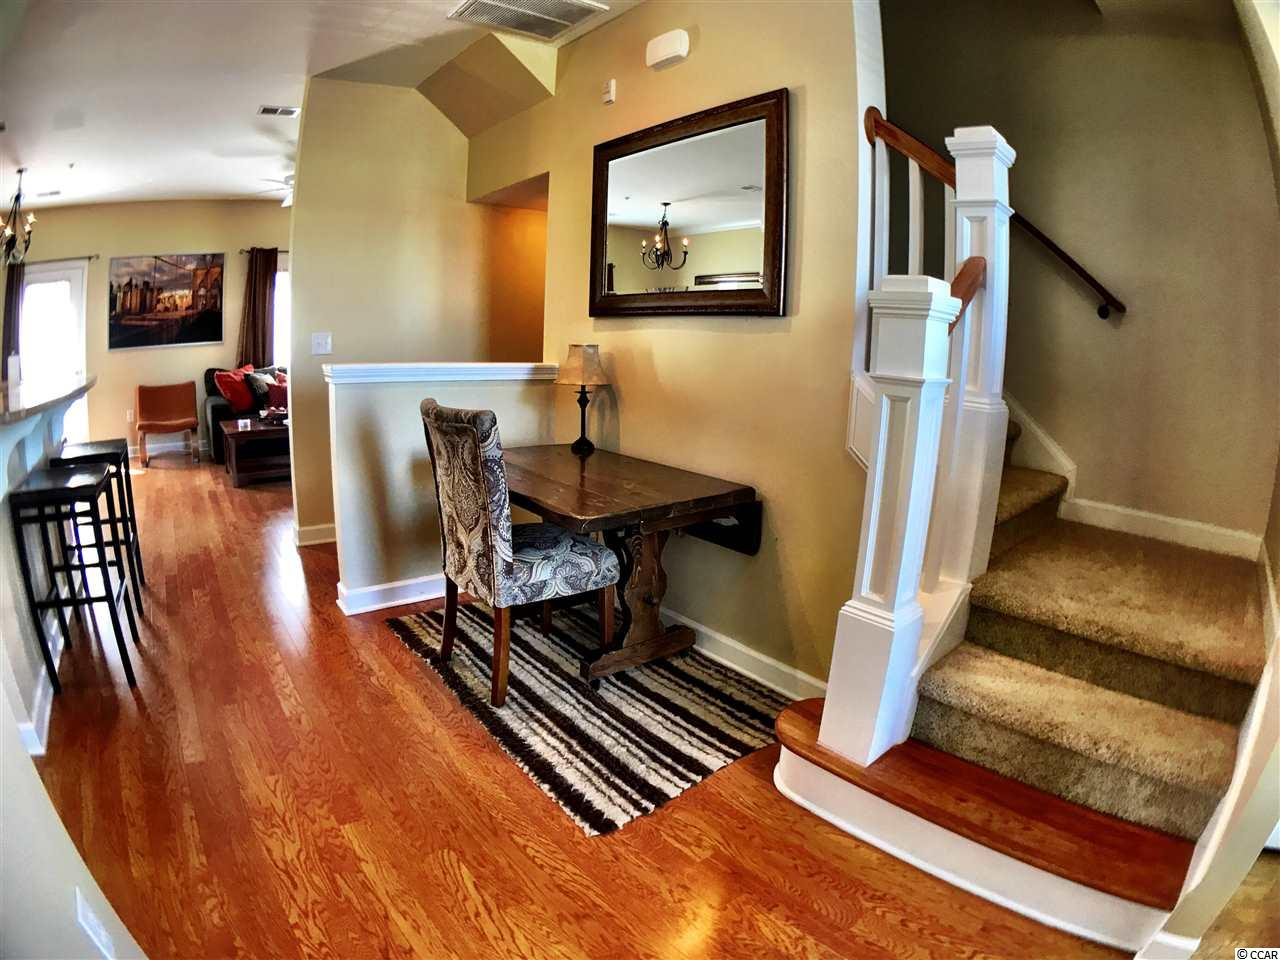 This 3 bedroom condo at  St. James Square - Myrtle Beach is currently for sale